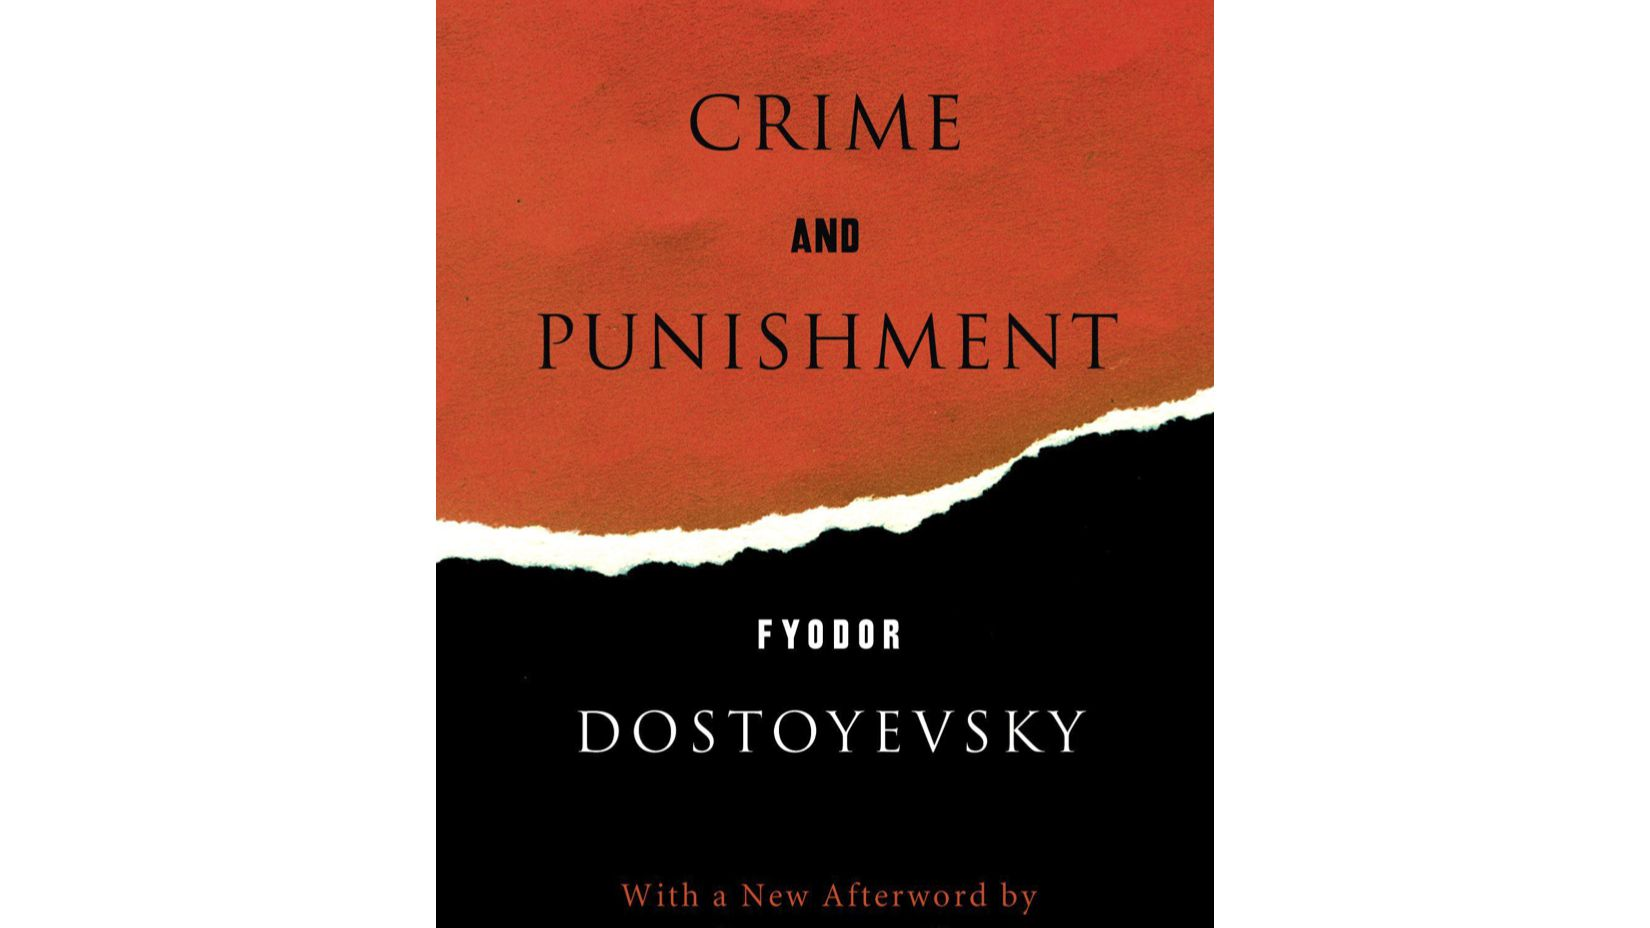 Dostoevsky 'Crime and Punishment' Quotations